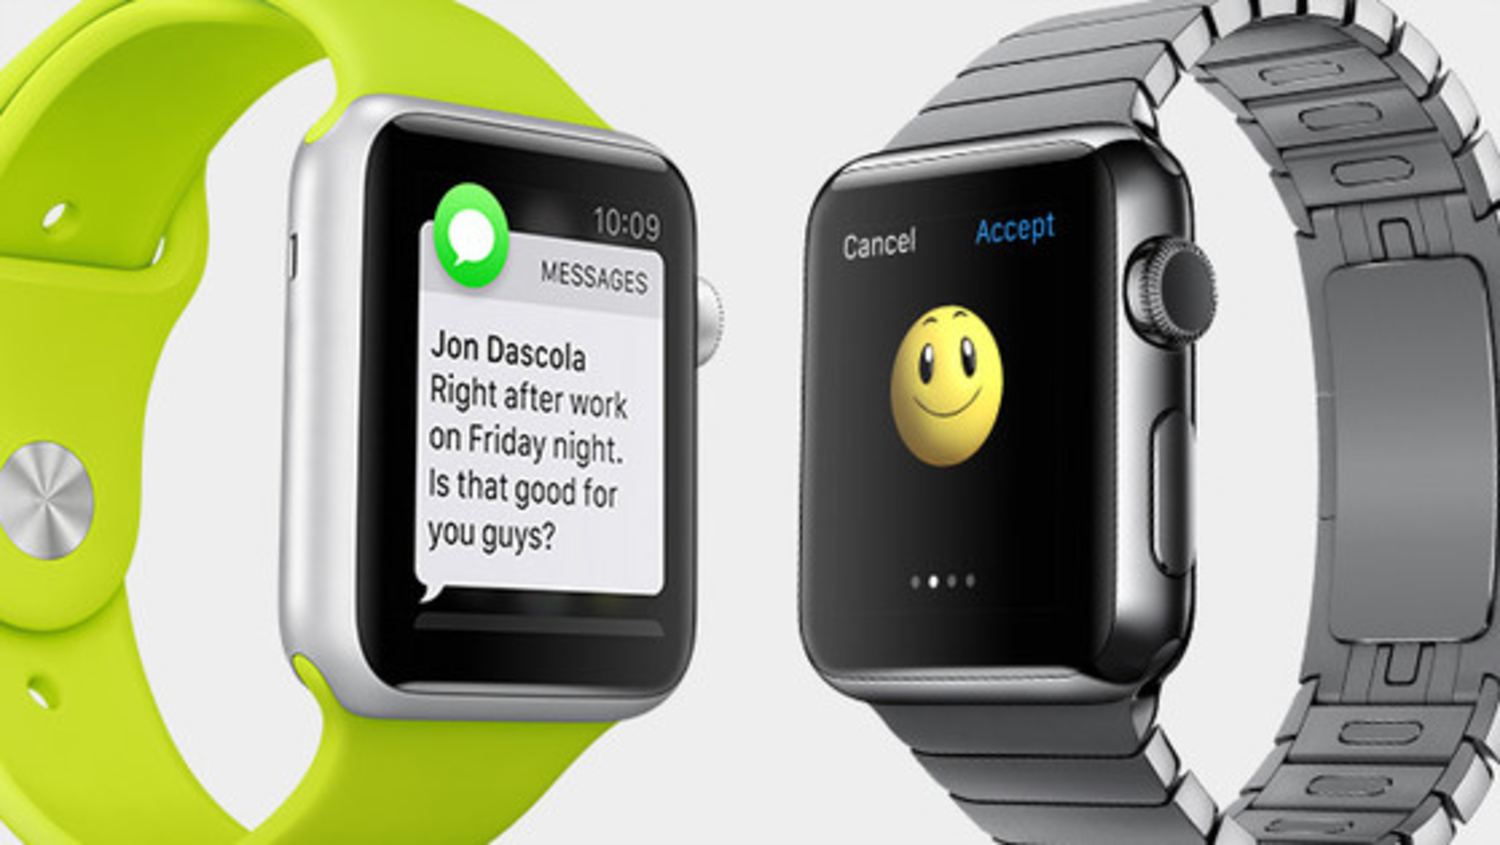 7 Things The Apple Watch Reminds Us Of